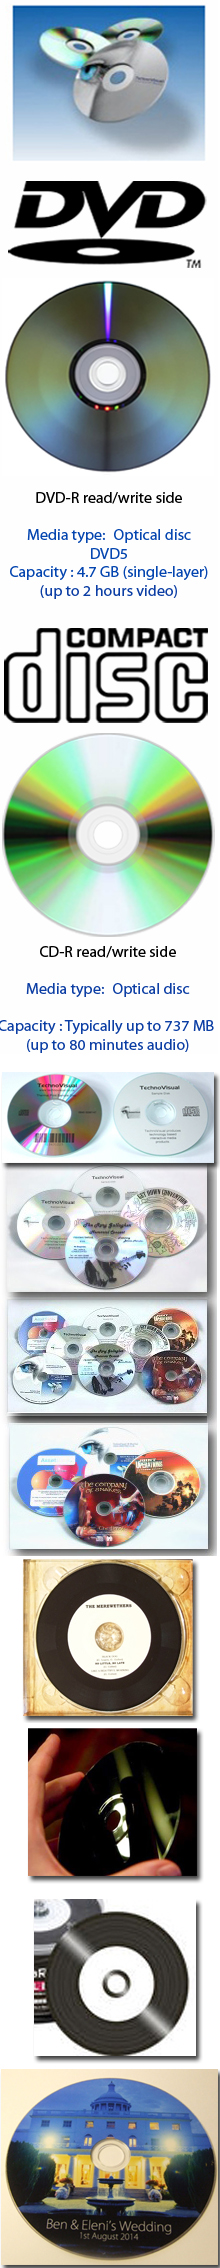 TechnoVisual CD & DVD Duplication Services